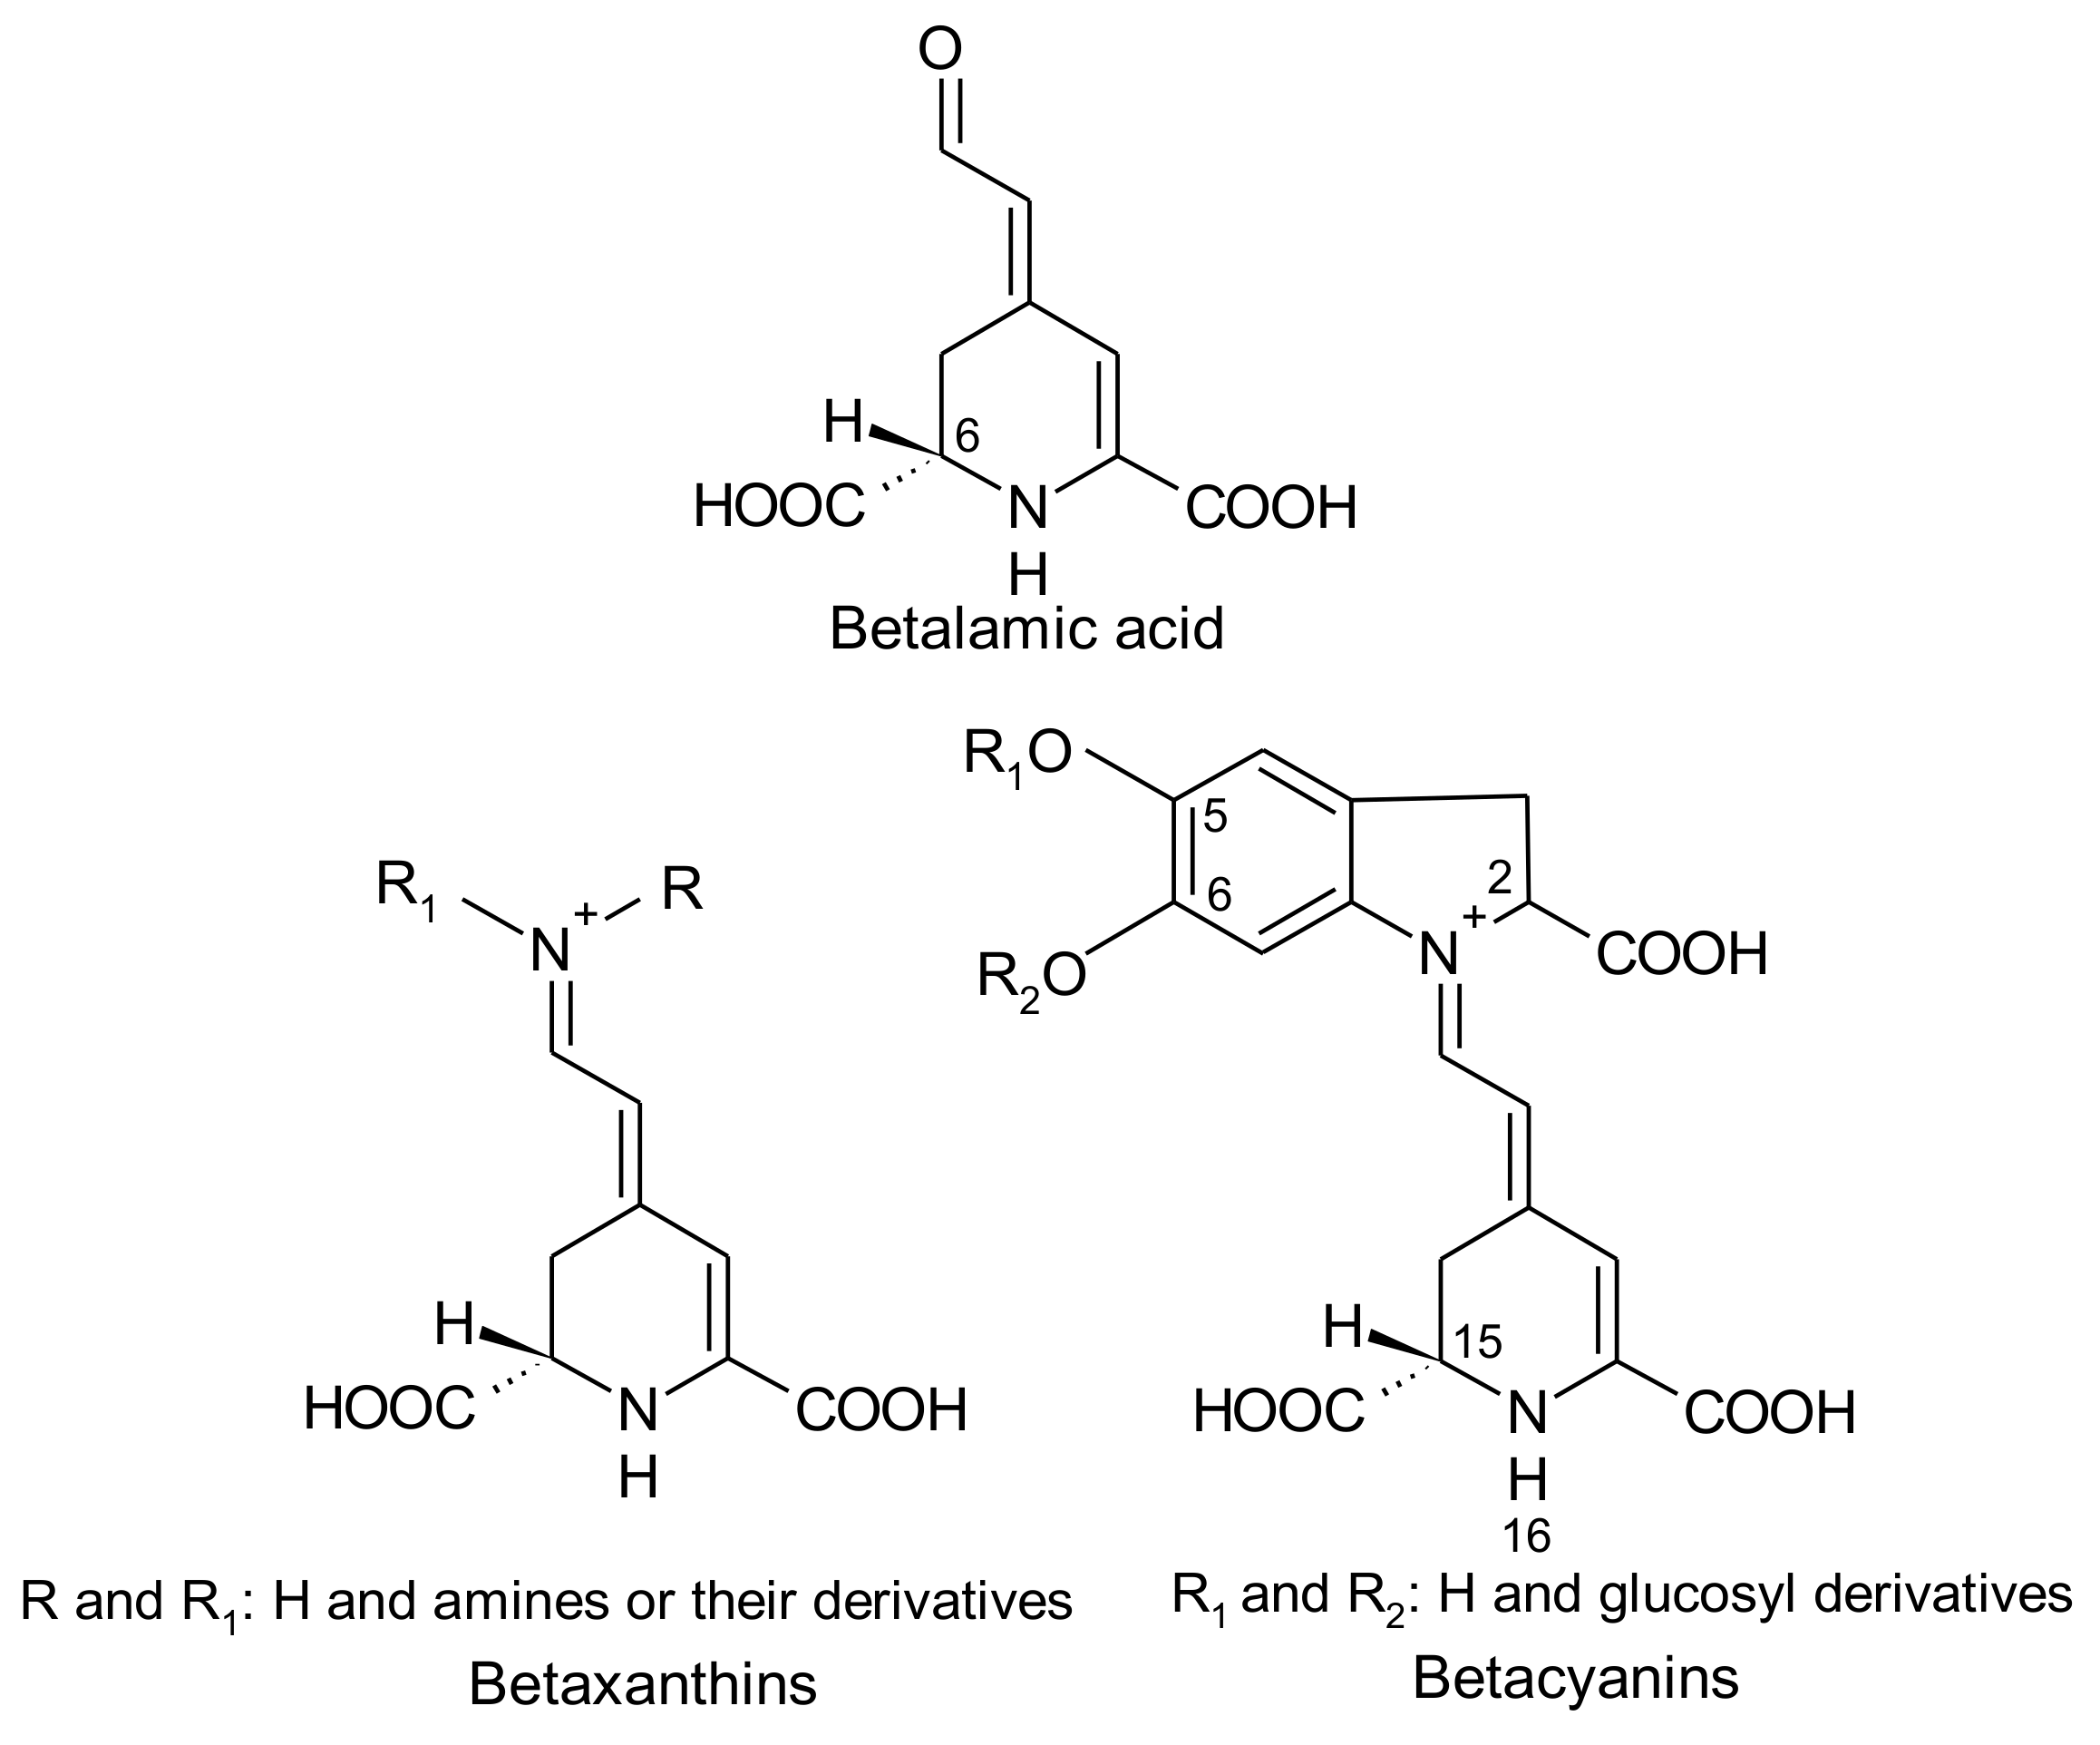 Antioxidants | Free Full-Text | Betalains in Some Species of